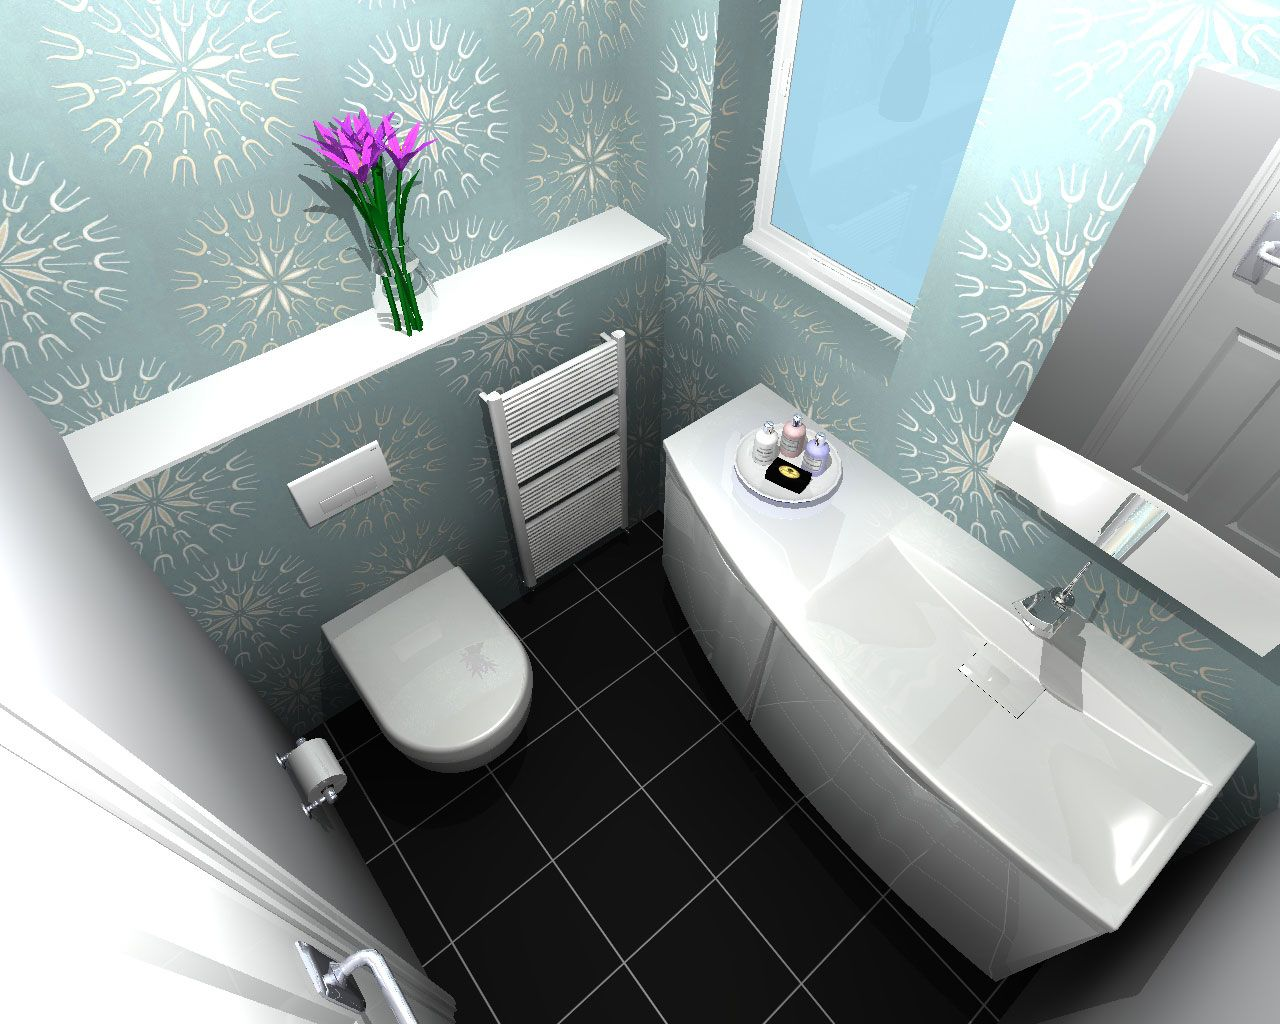 Bathroom Design How Much Space For Toilet wc - cloakroom design - this compact installation included a